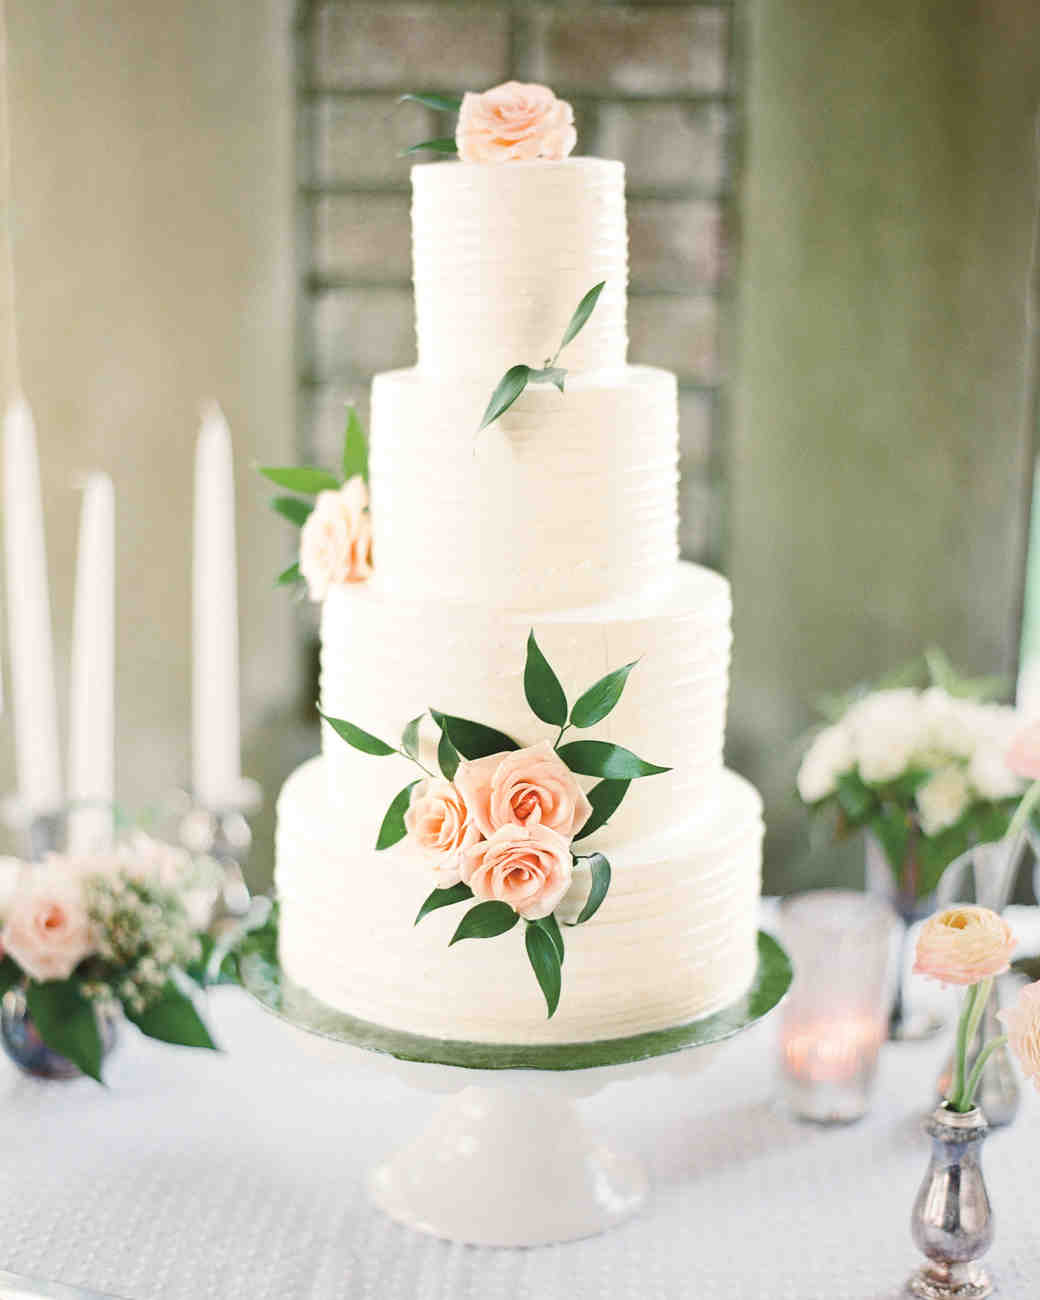 wedding-cake-roses-2013-08-31-bomibilly-0742-mwds110832.jpg